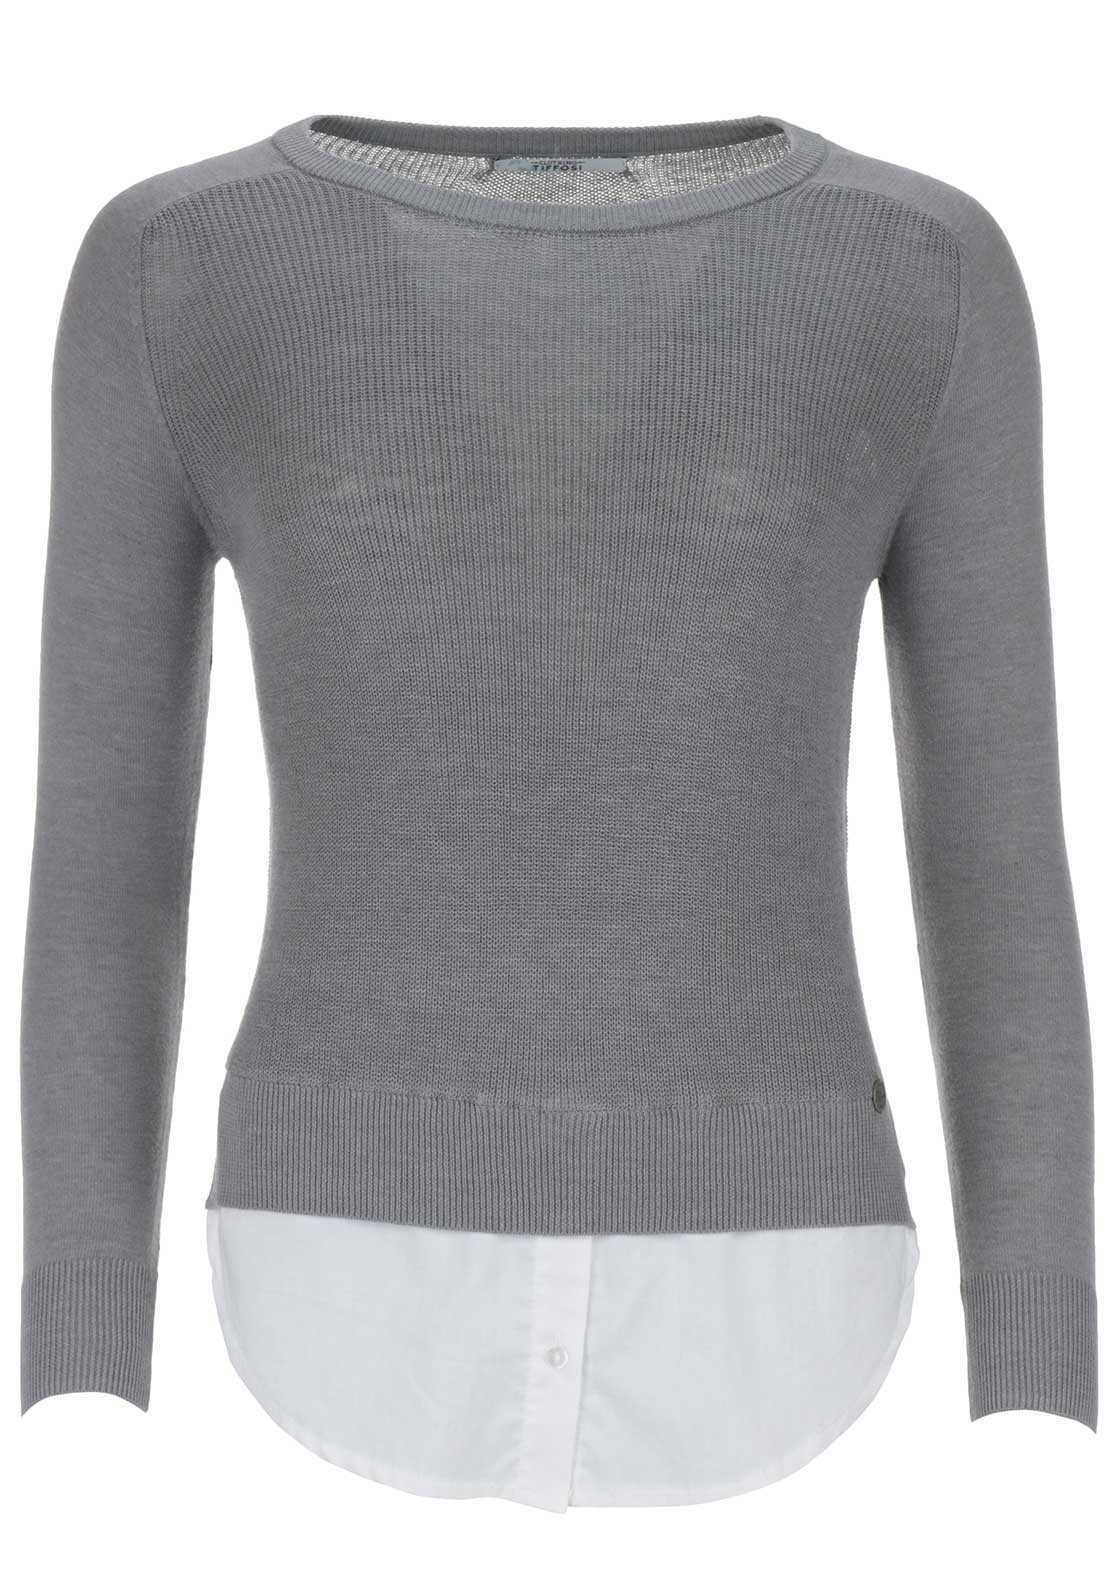 Tiffosi Womens Christie Knit Top, Grey